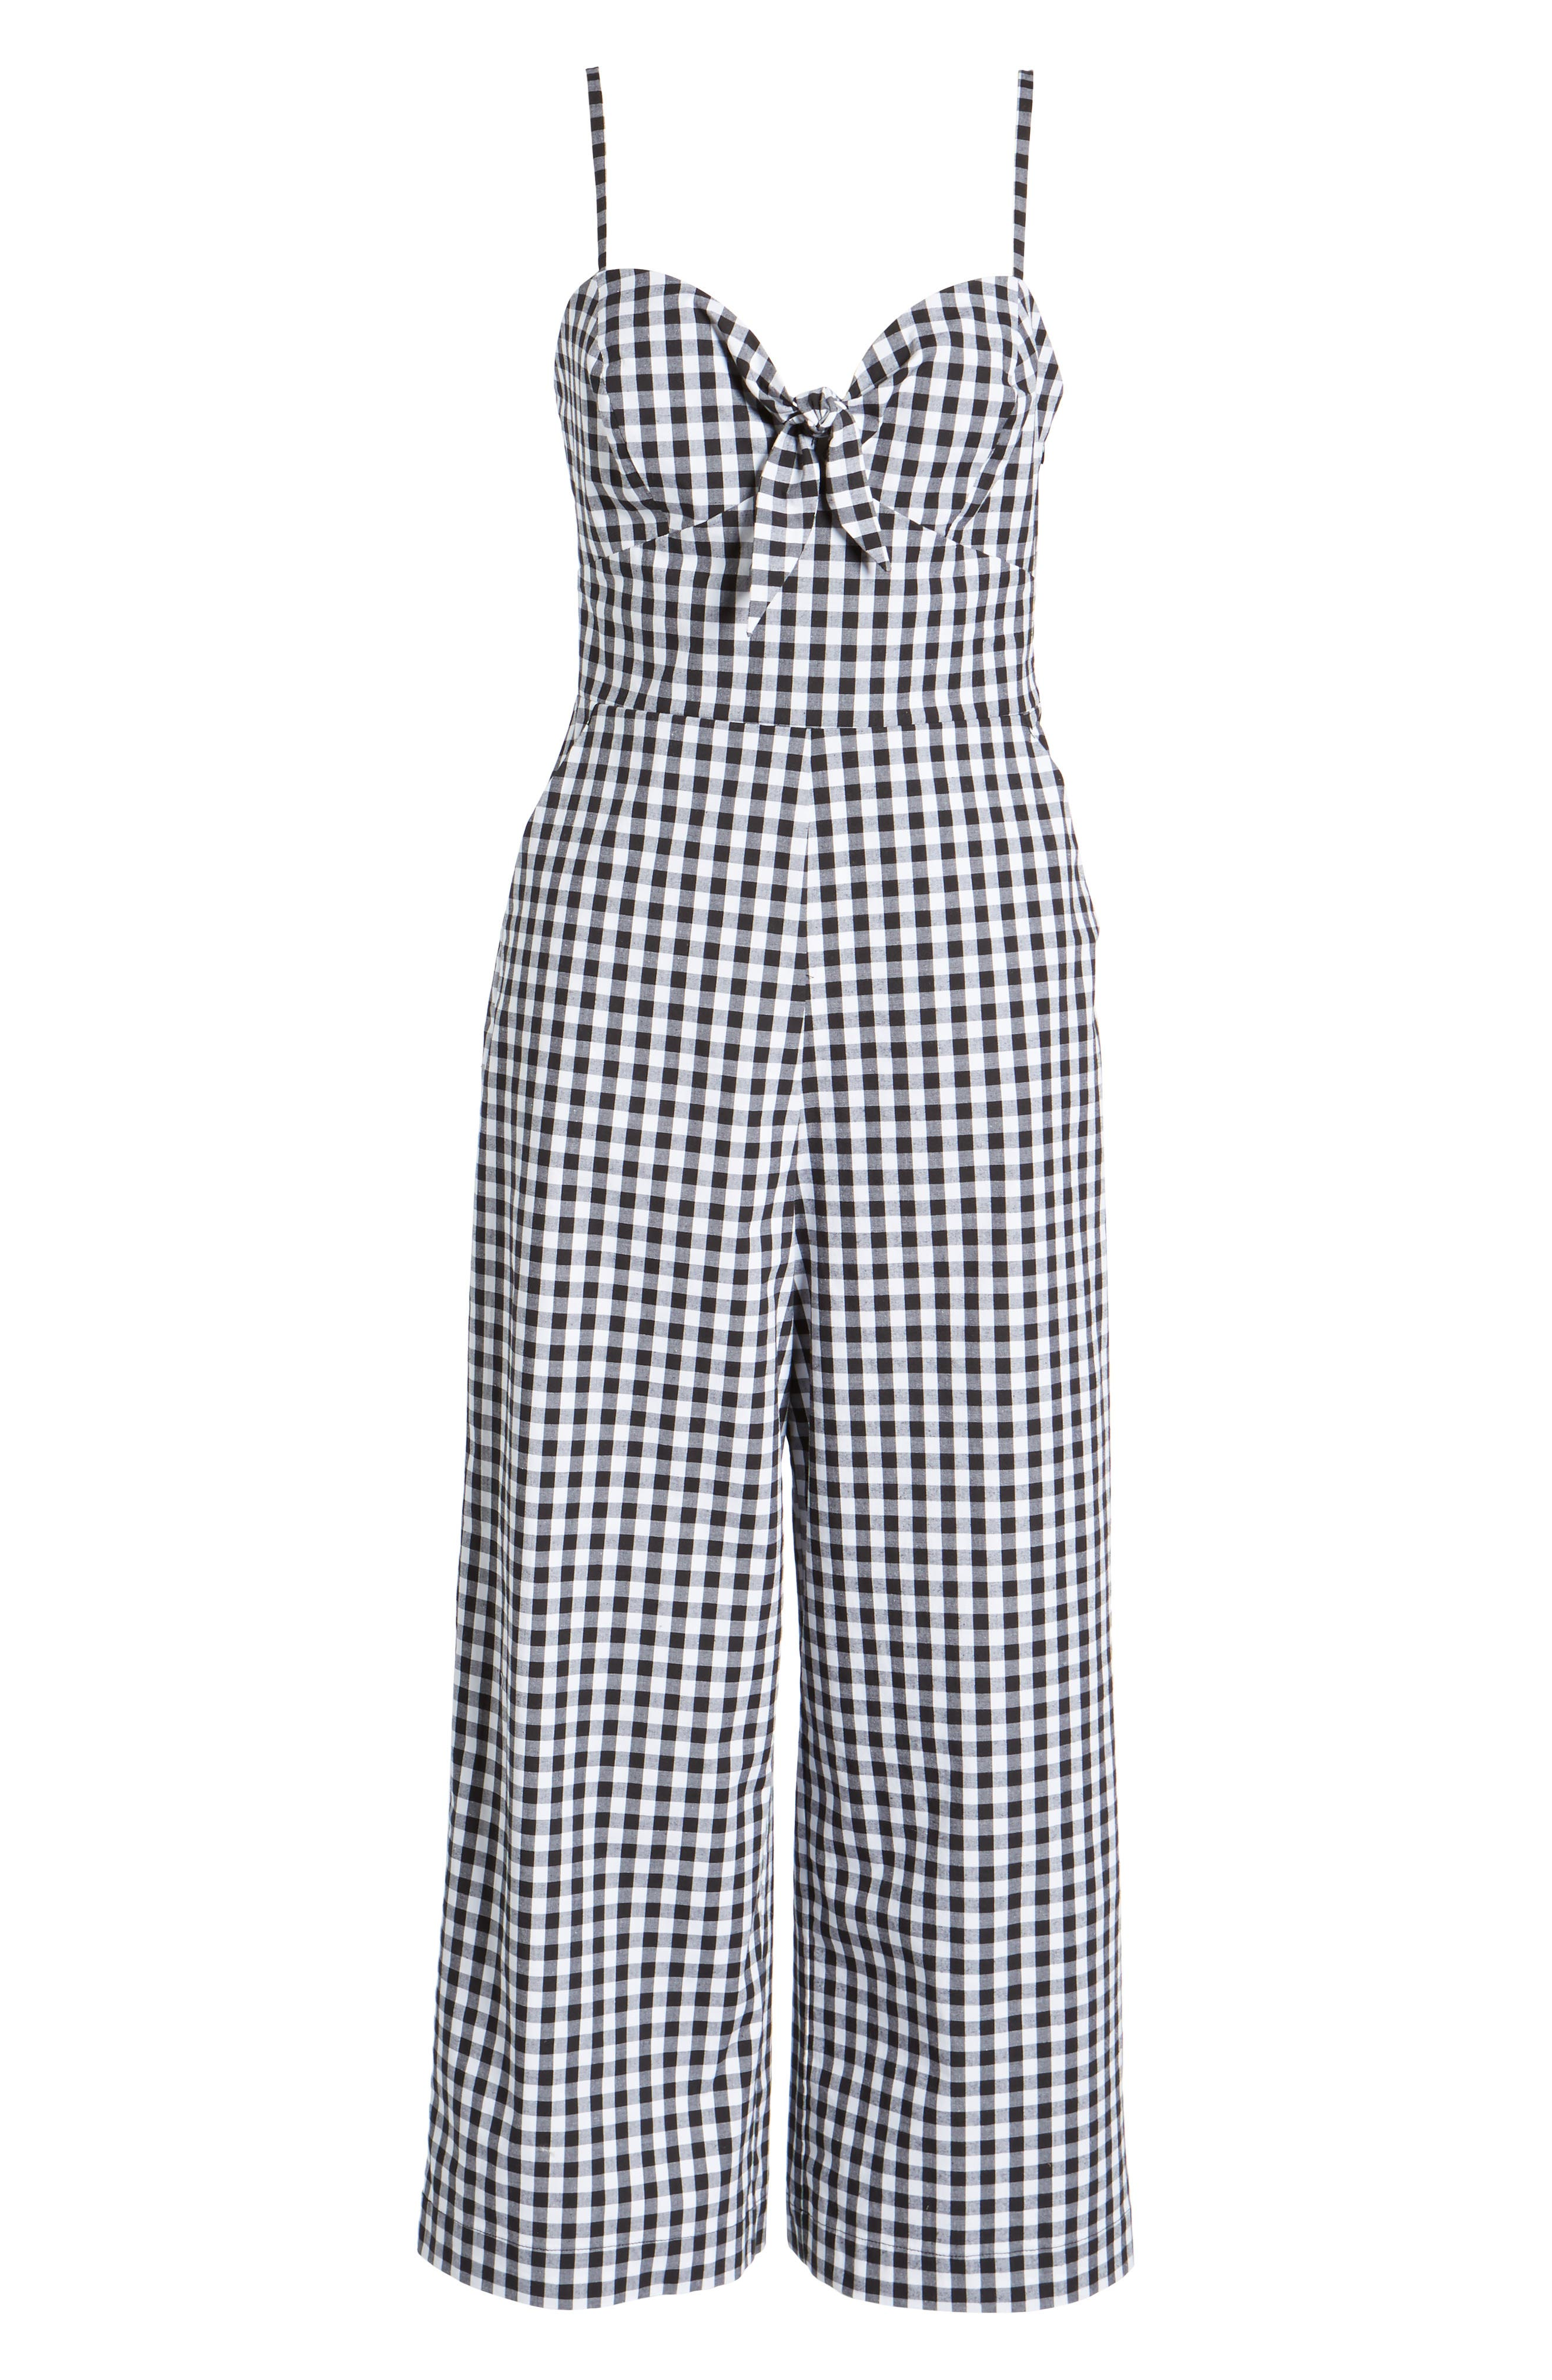 Tie Front Cropped Jumpsuit,                             Alternate thumbnail 6, color,                             Black/ White Gingham